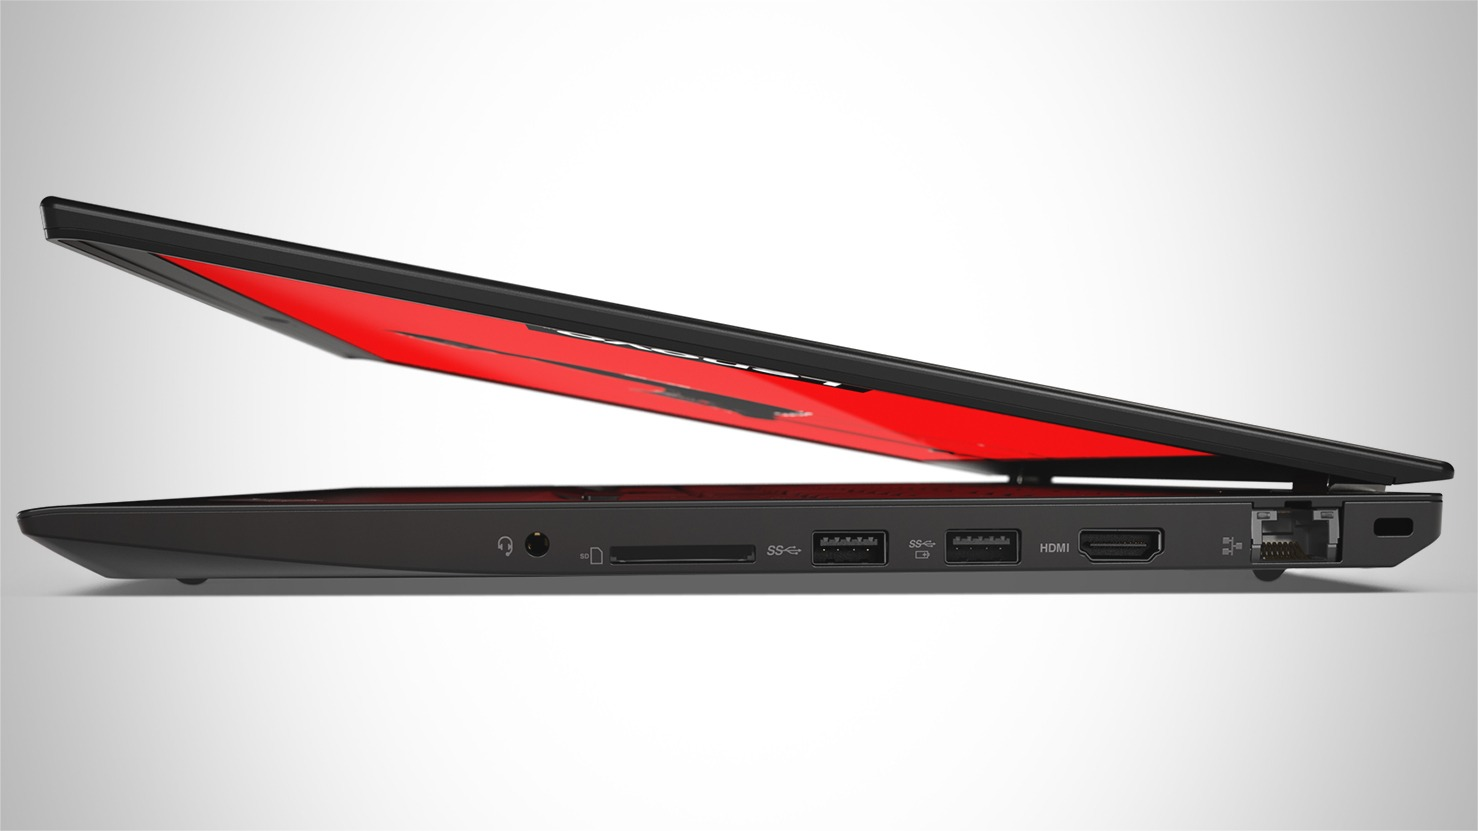 Lenovo Launches New Lineup of Impressive Workstations for 3D